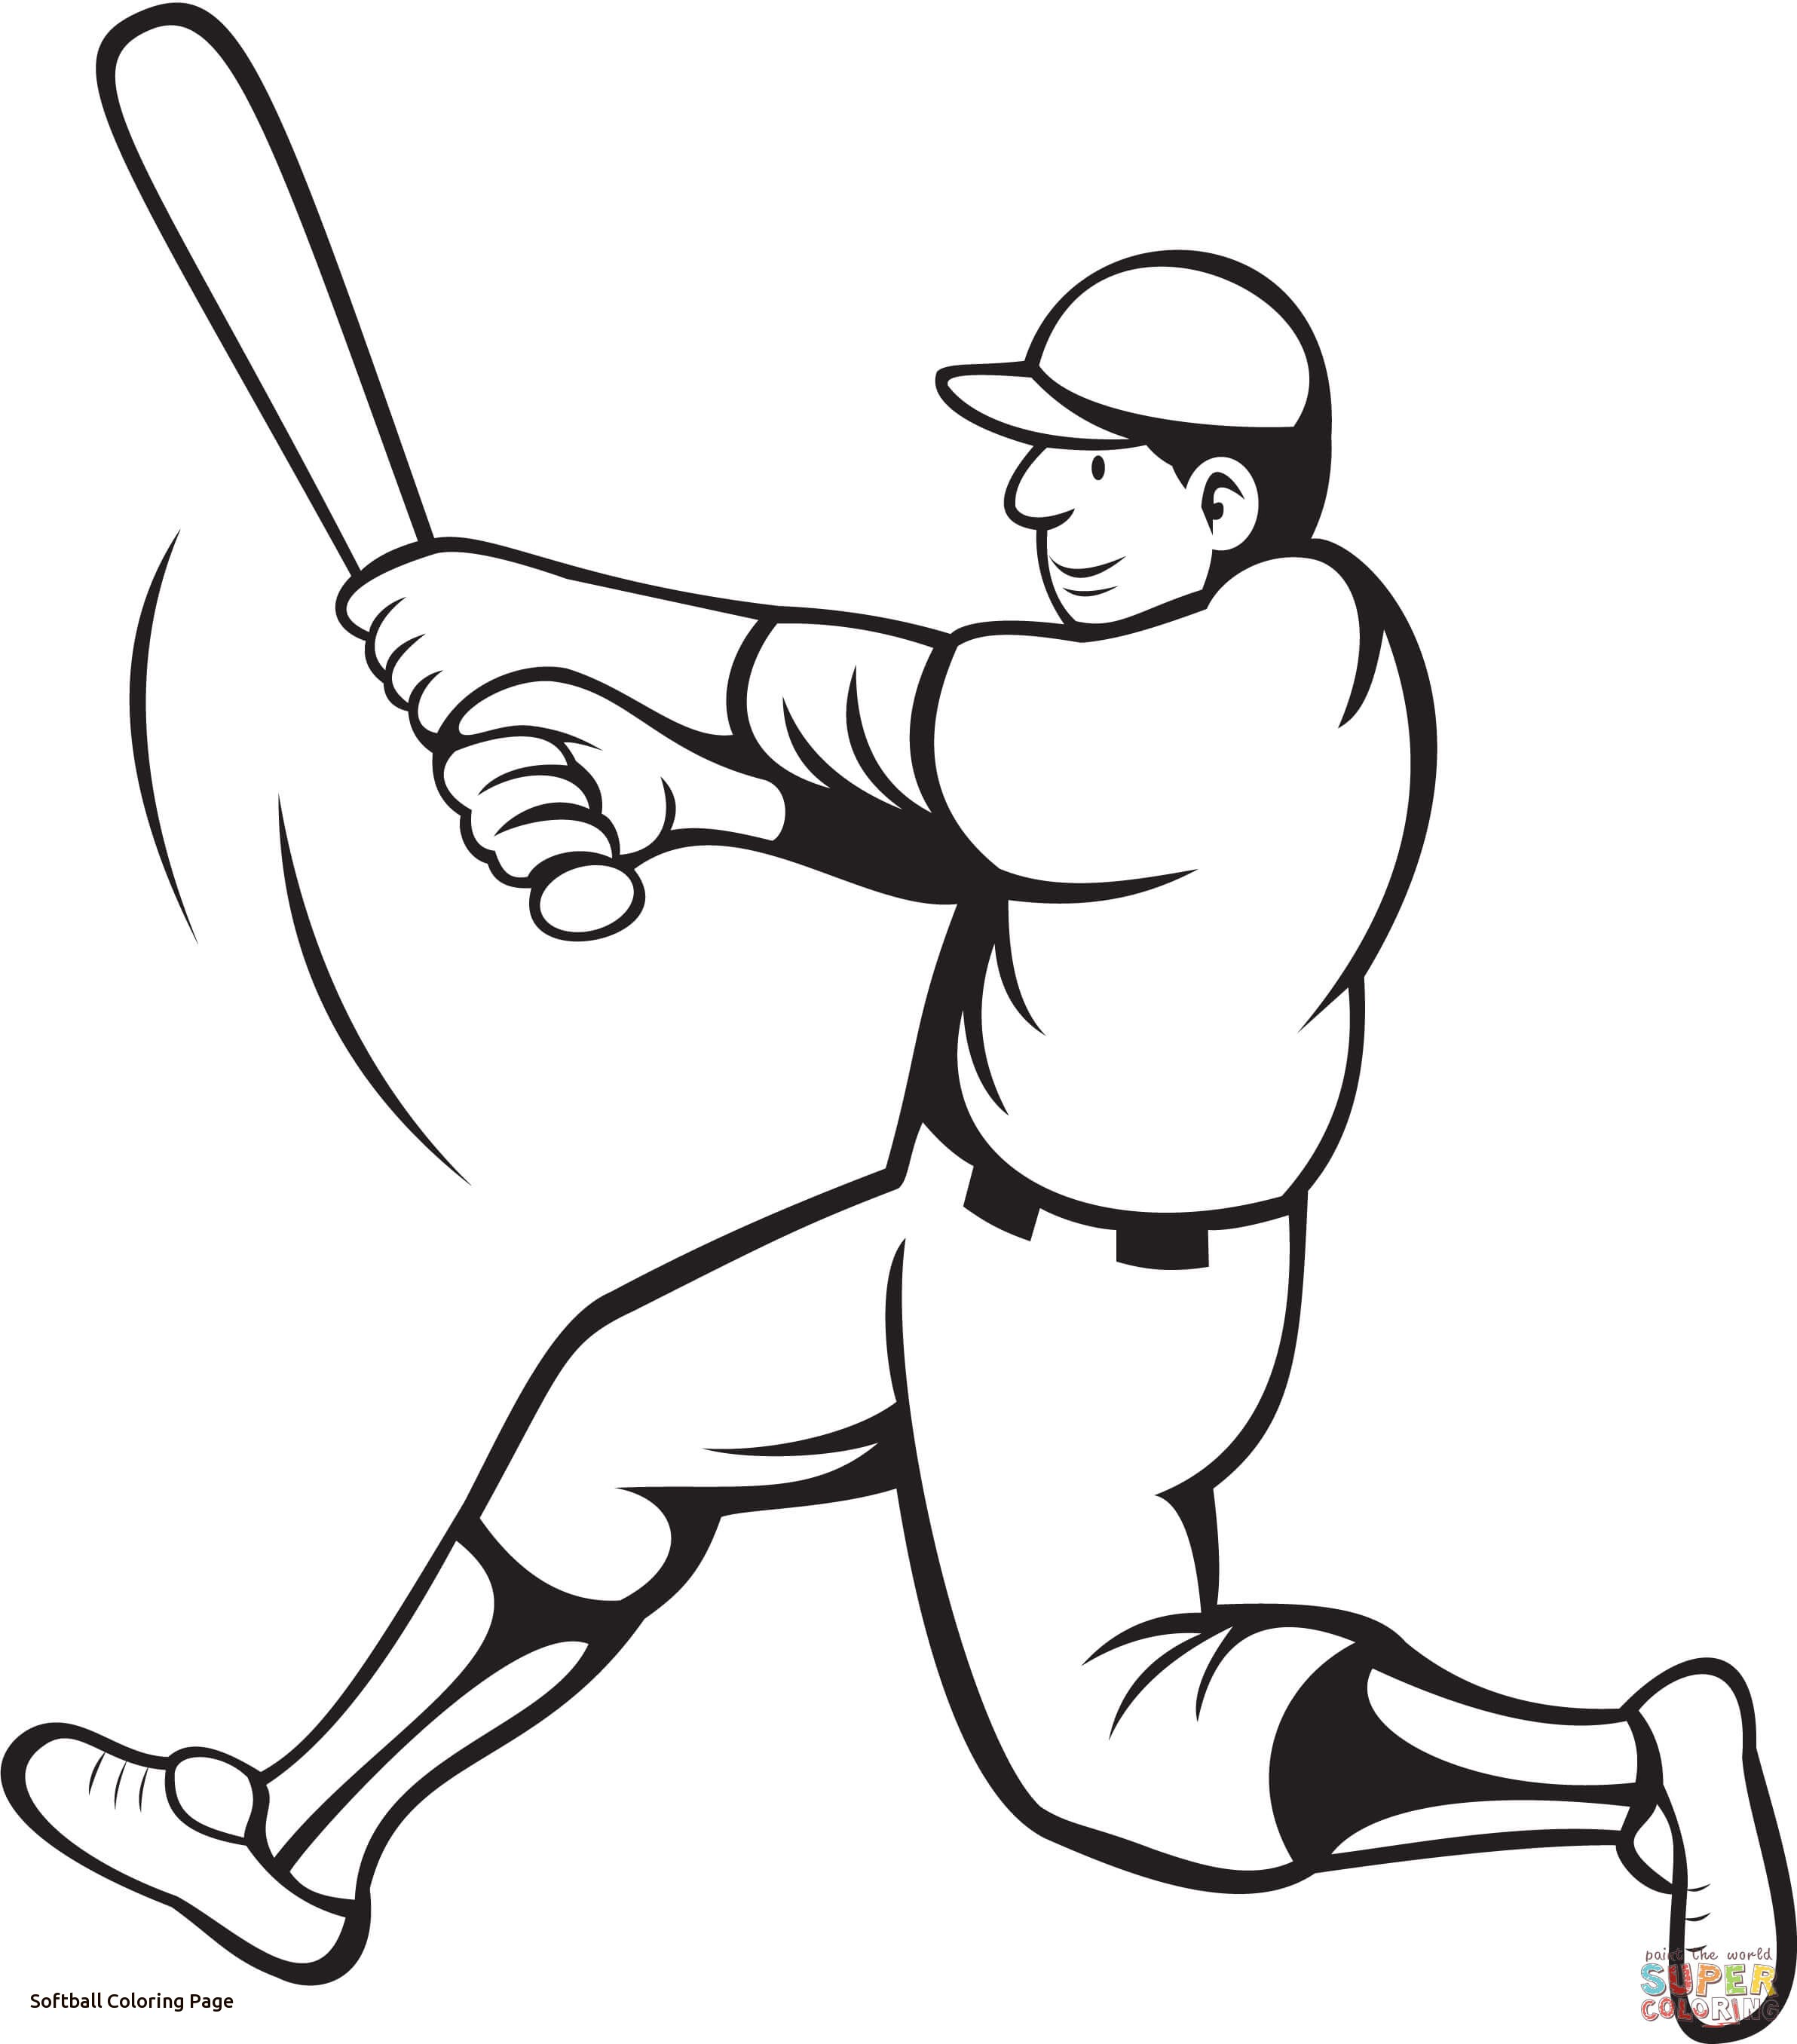 Softball Coloring Pages Printable